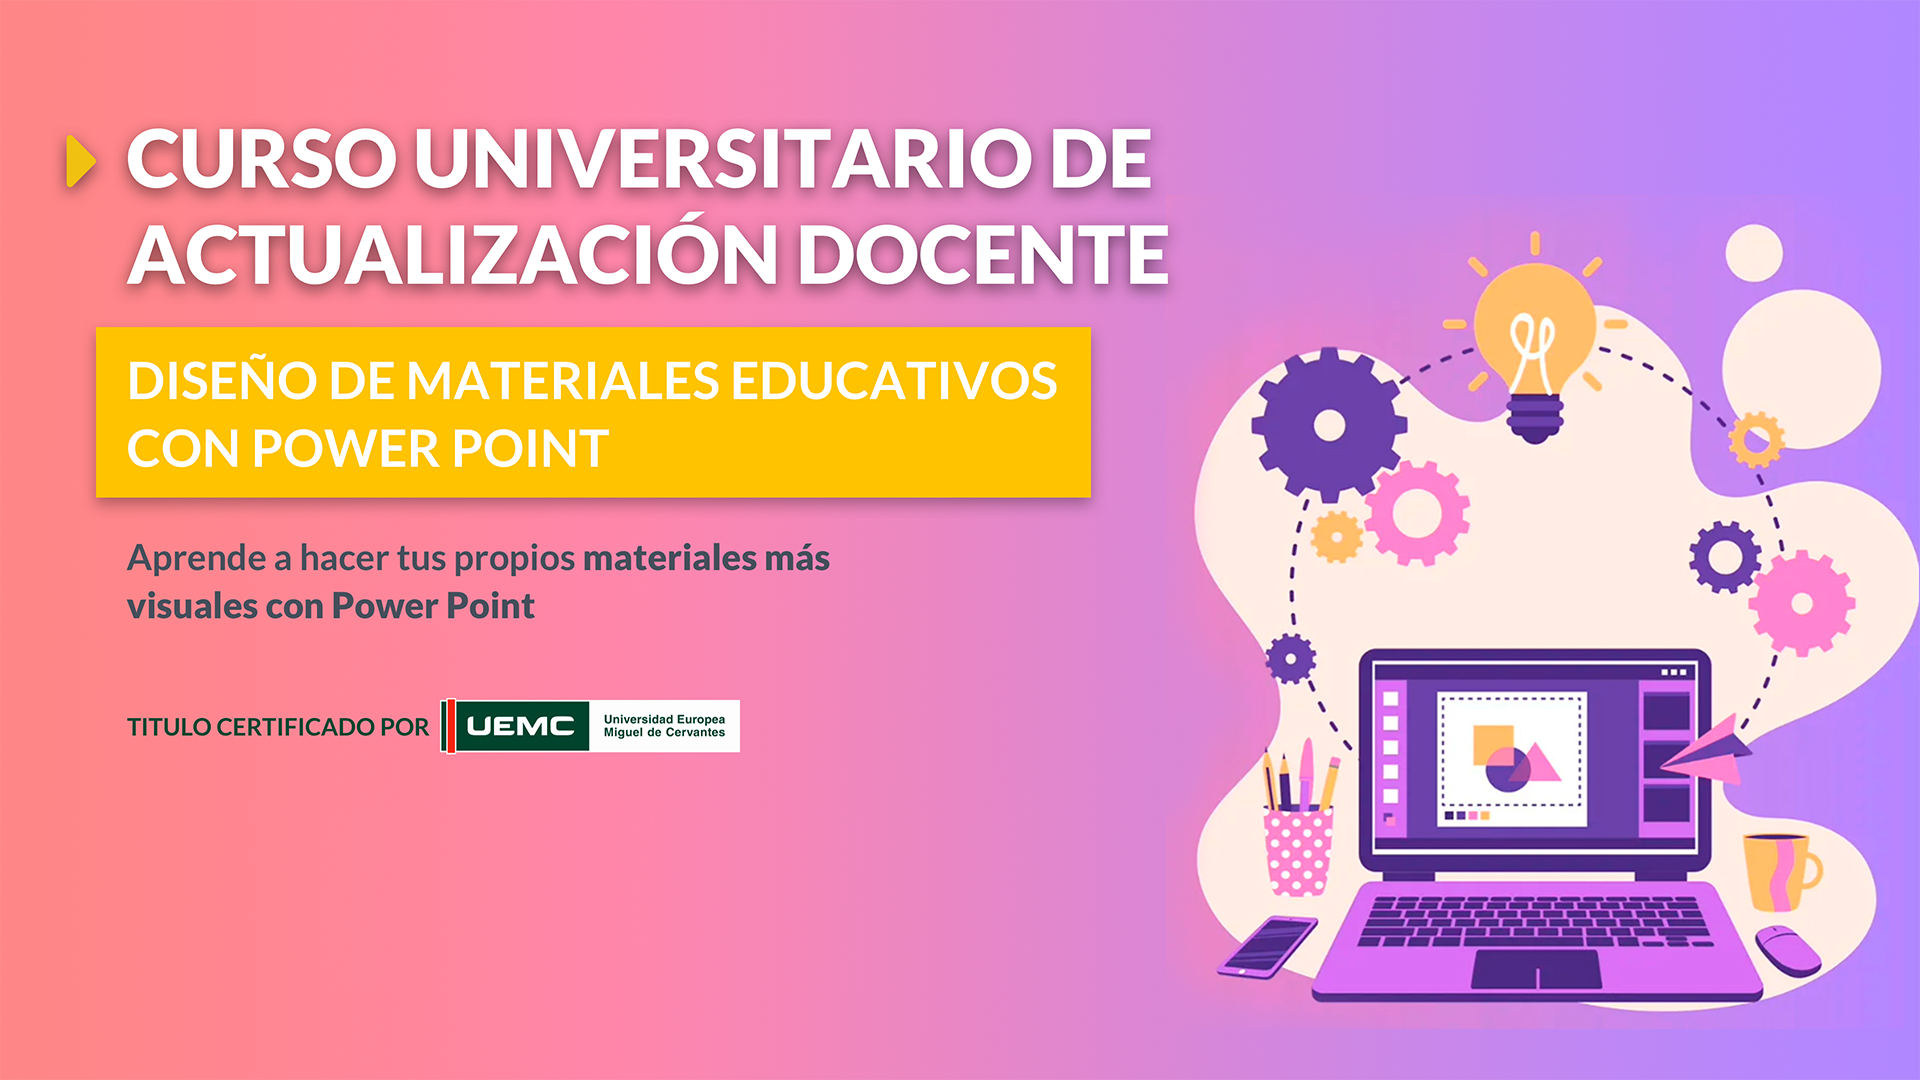 Cursos Universitarios de Actualización Docente: Diseño de materiales educativos con Power Point